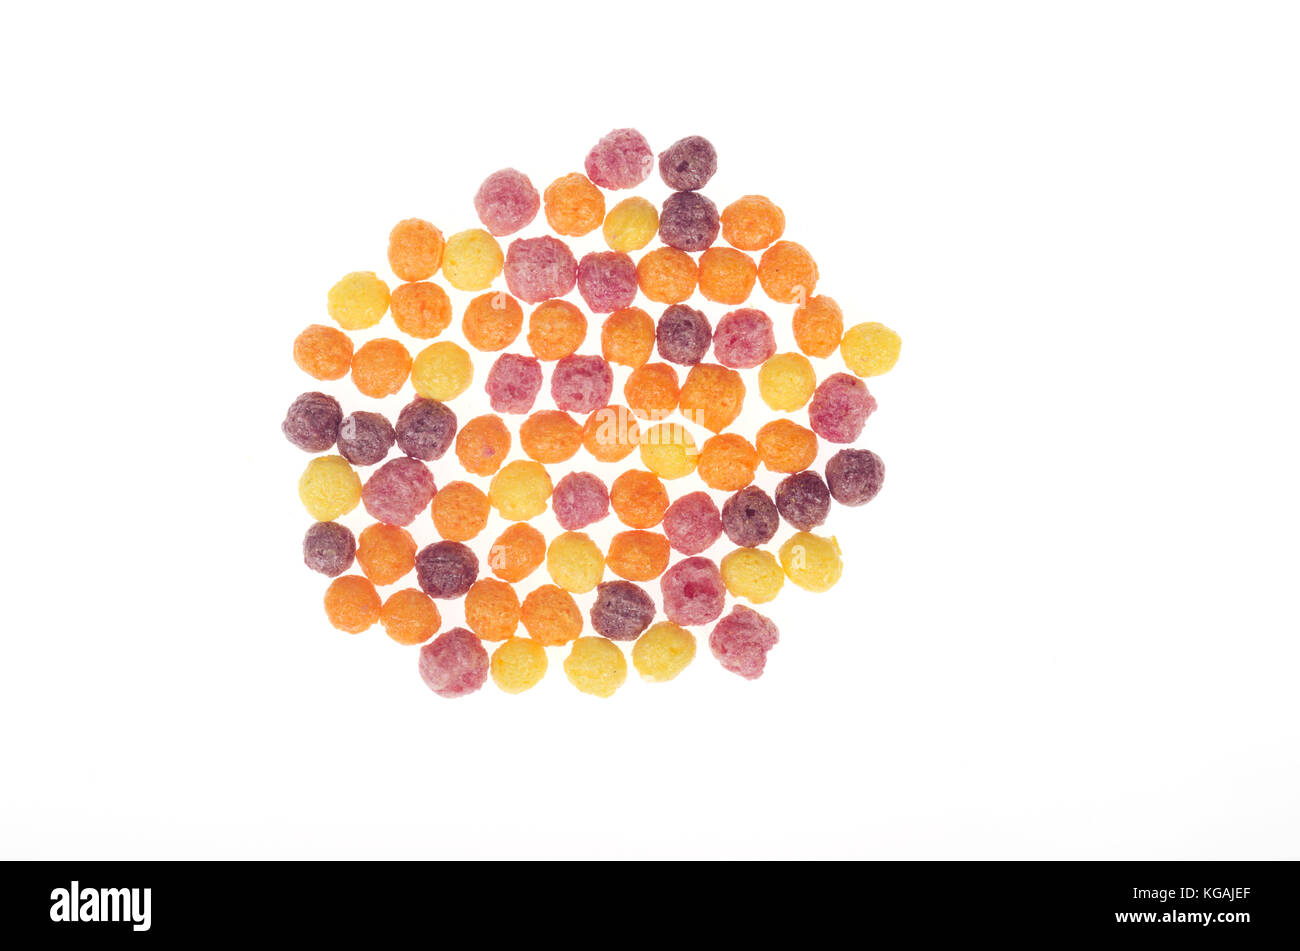 Trix cereal from General Mills on white background - Stock Image